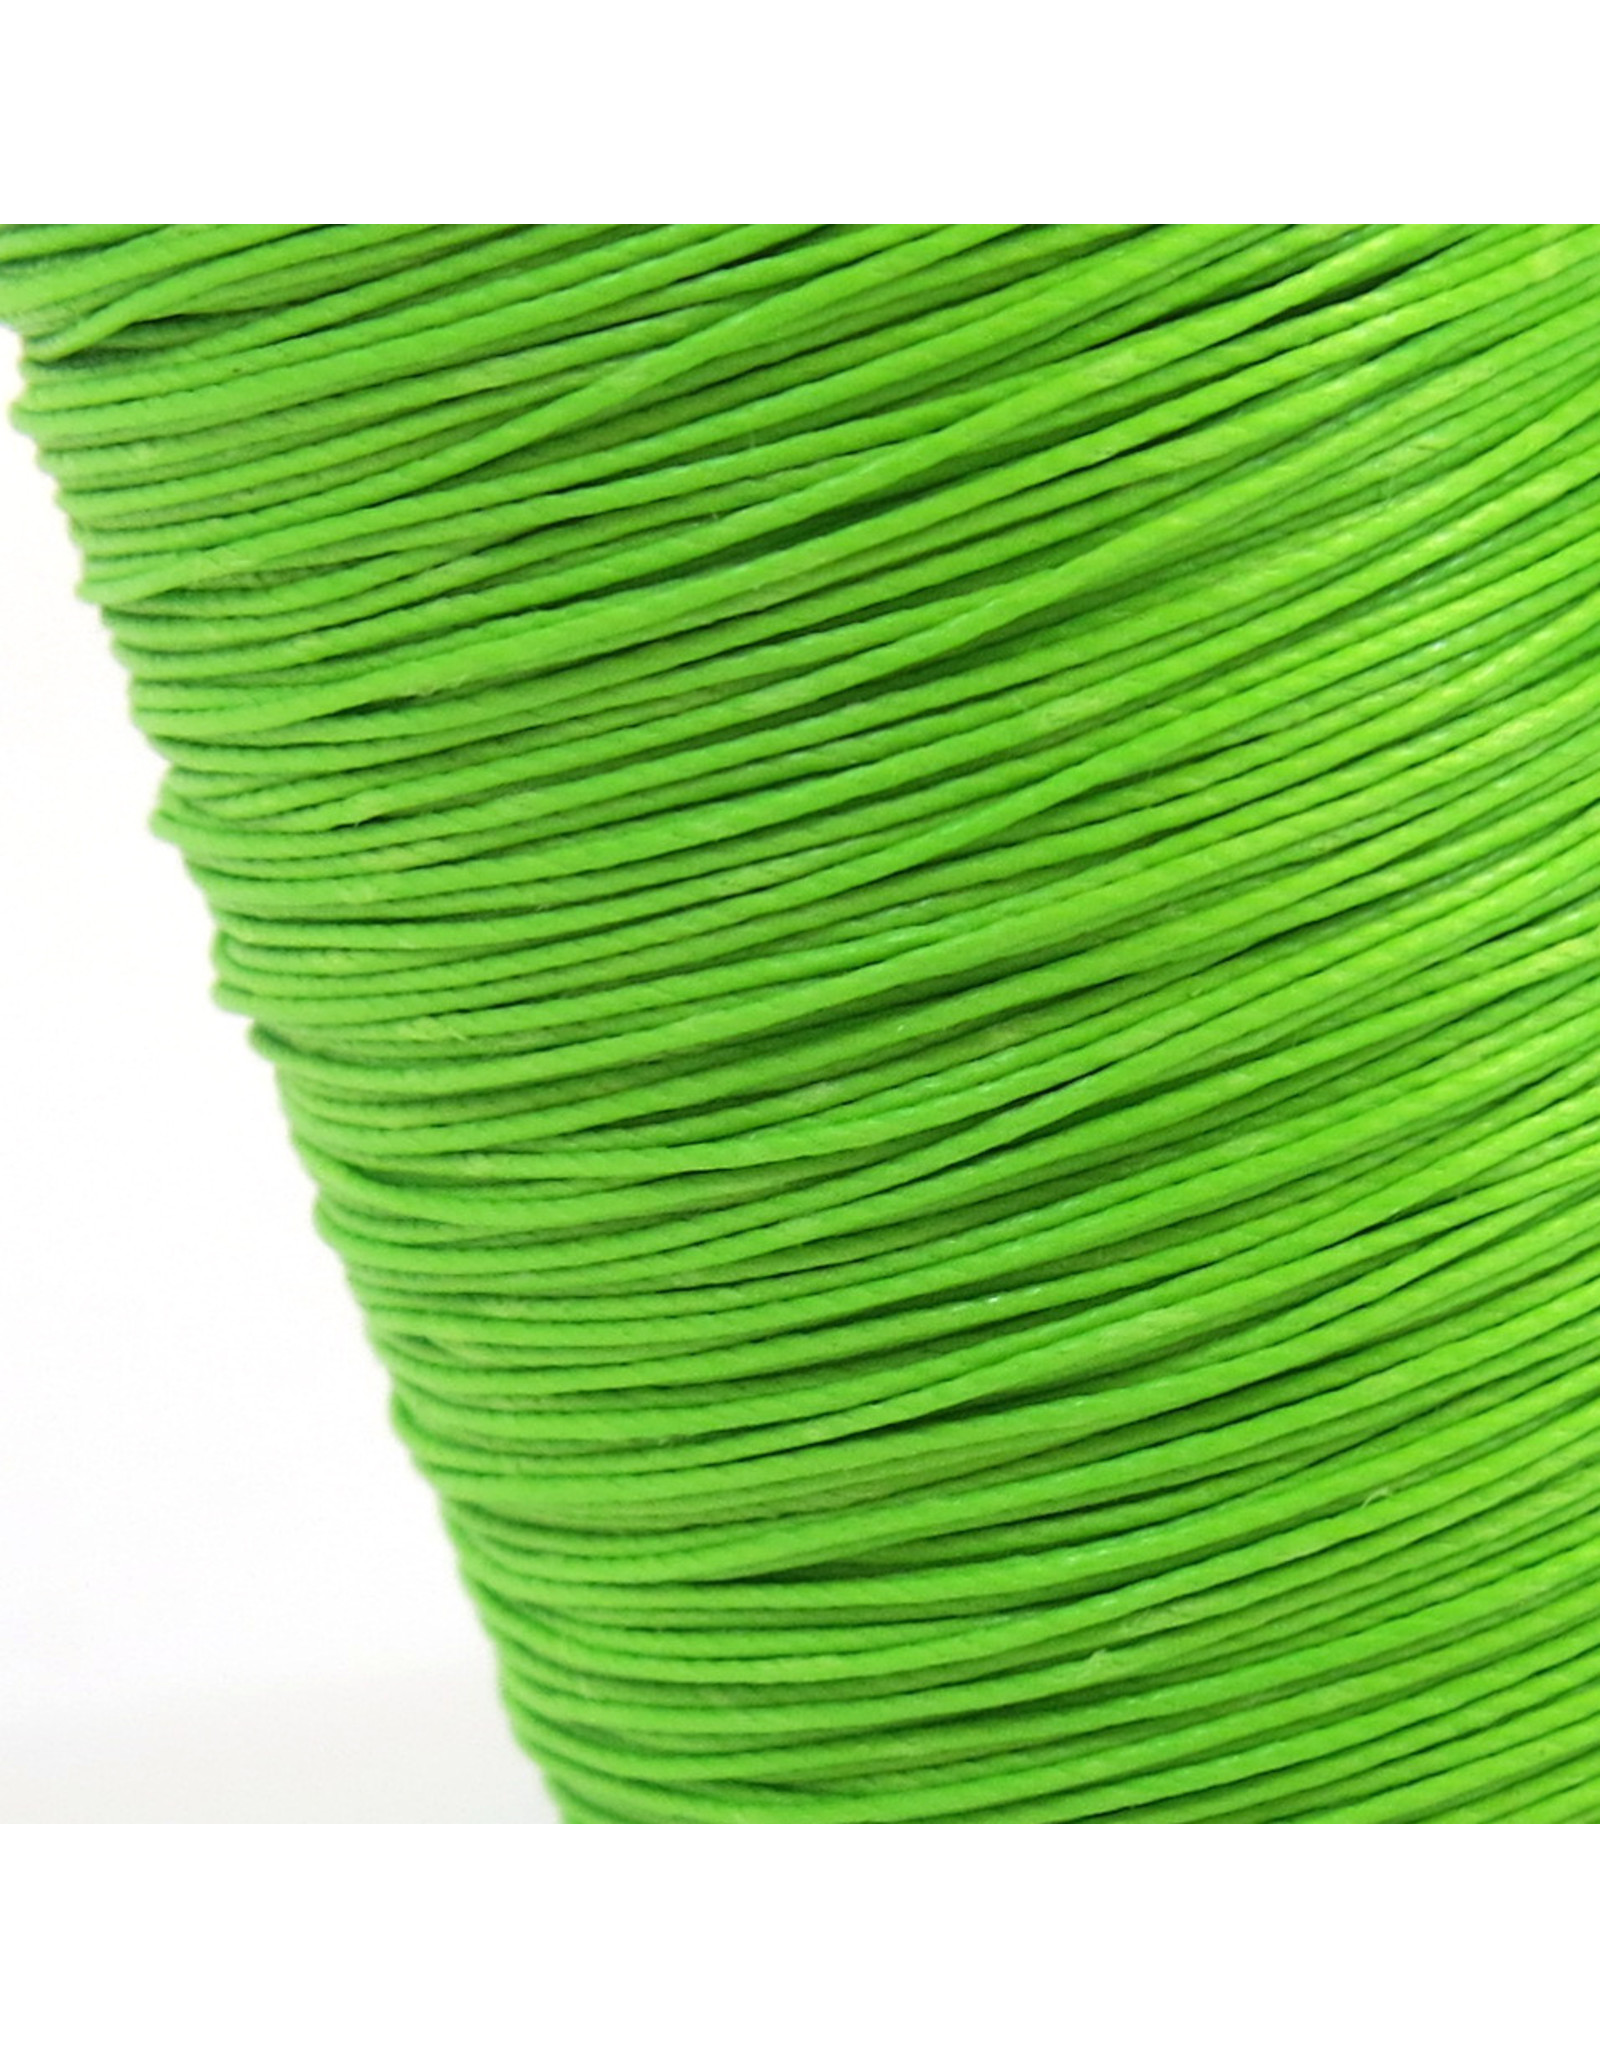 Hand sewing thread Lime green